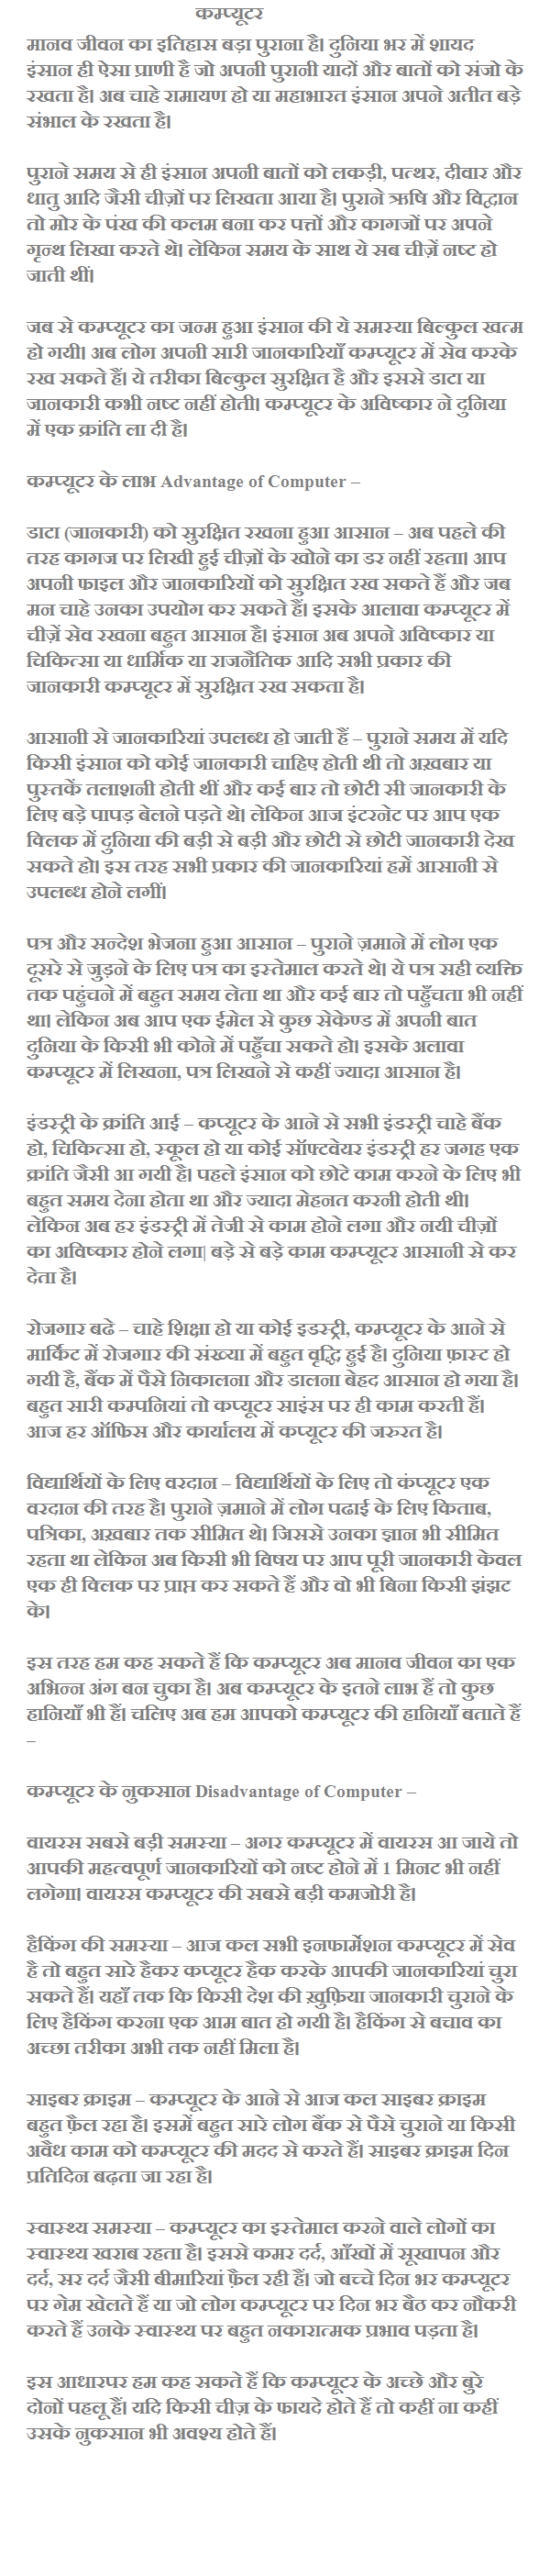 essay on computer in hindi Manas khatri 4 few help 4 write essay on computer manas khatri, popularly known as manas 'mastana' is a renowned hindi poet, writer and satirist.